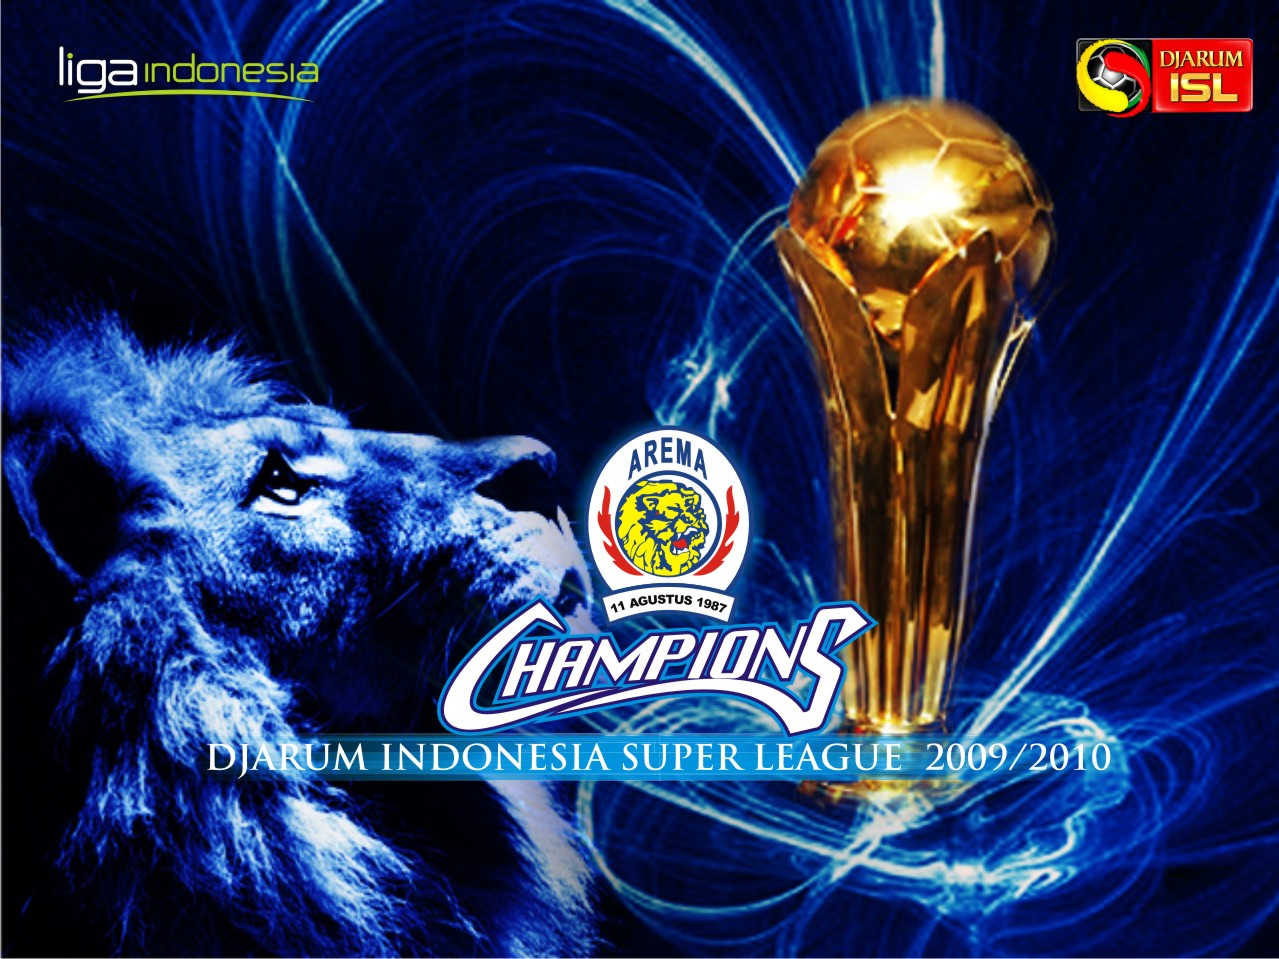 hd wallpapers  Wallpaper Arema Singo Edan